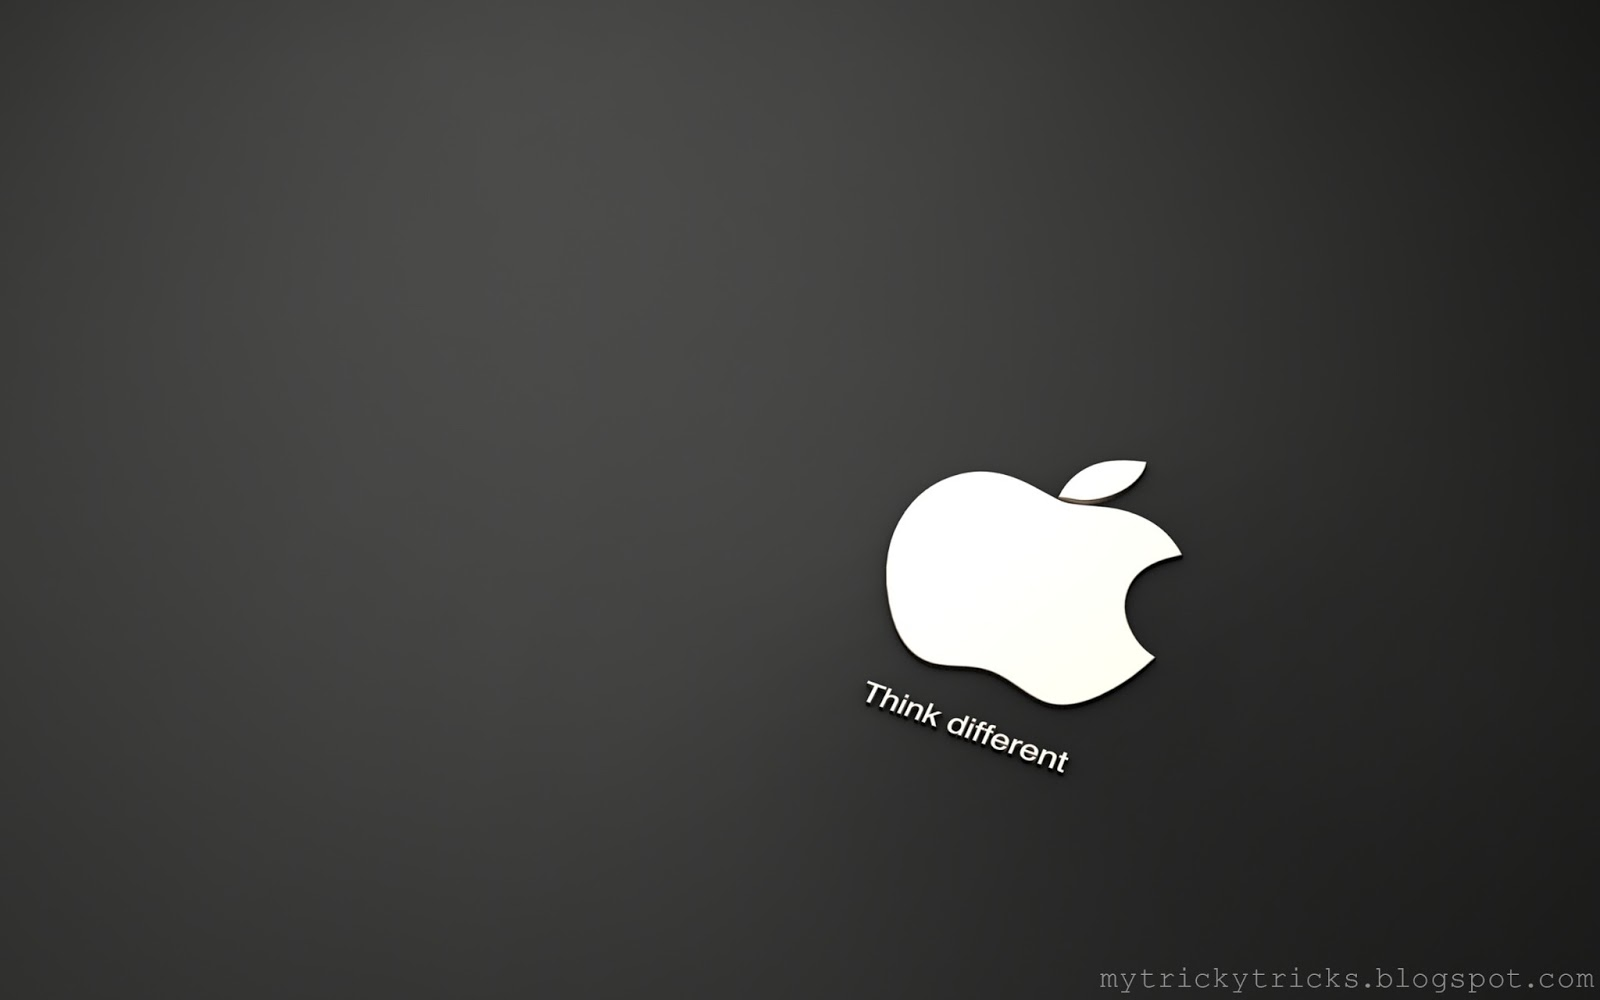 Tribute to Steve Jobs Wallpapers HD Wallpapers